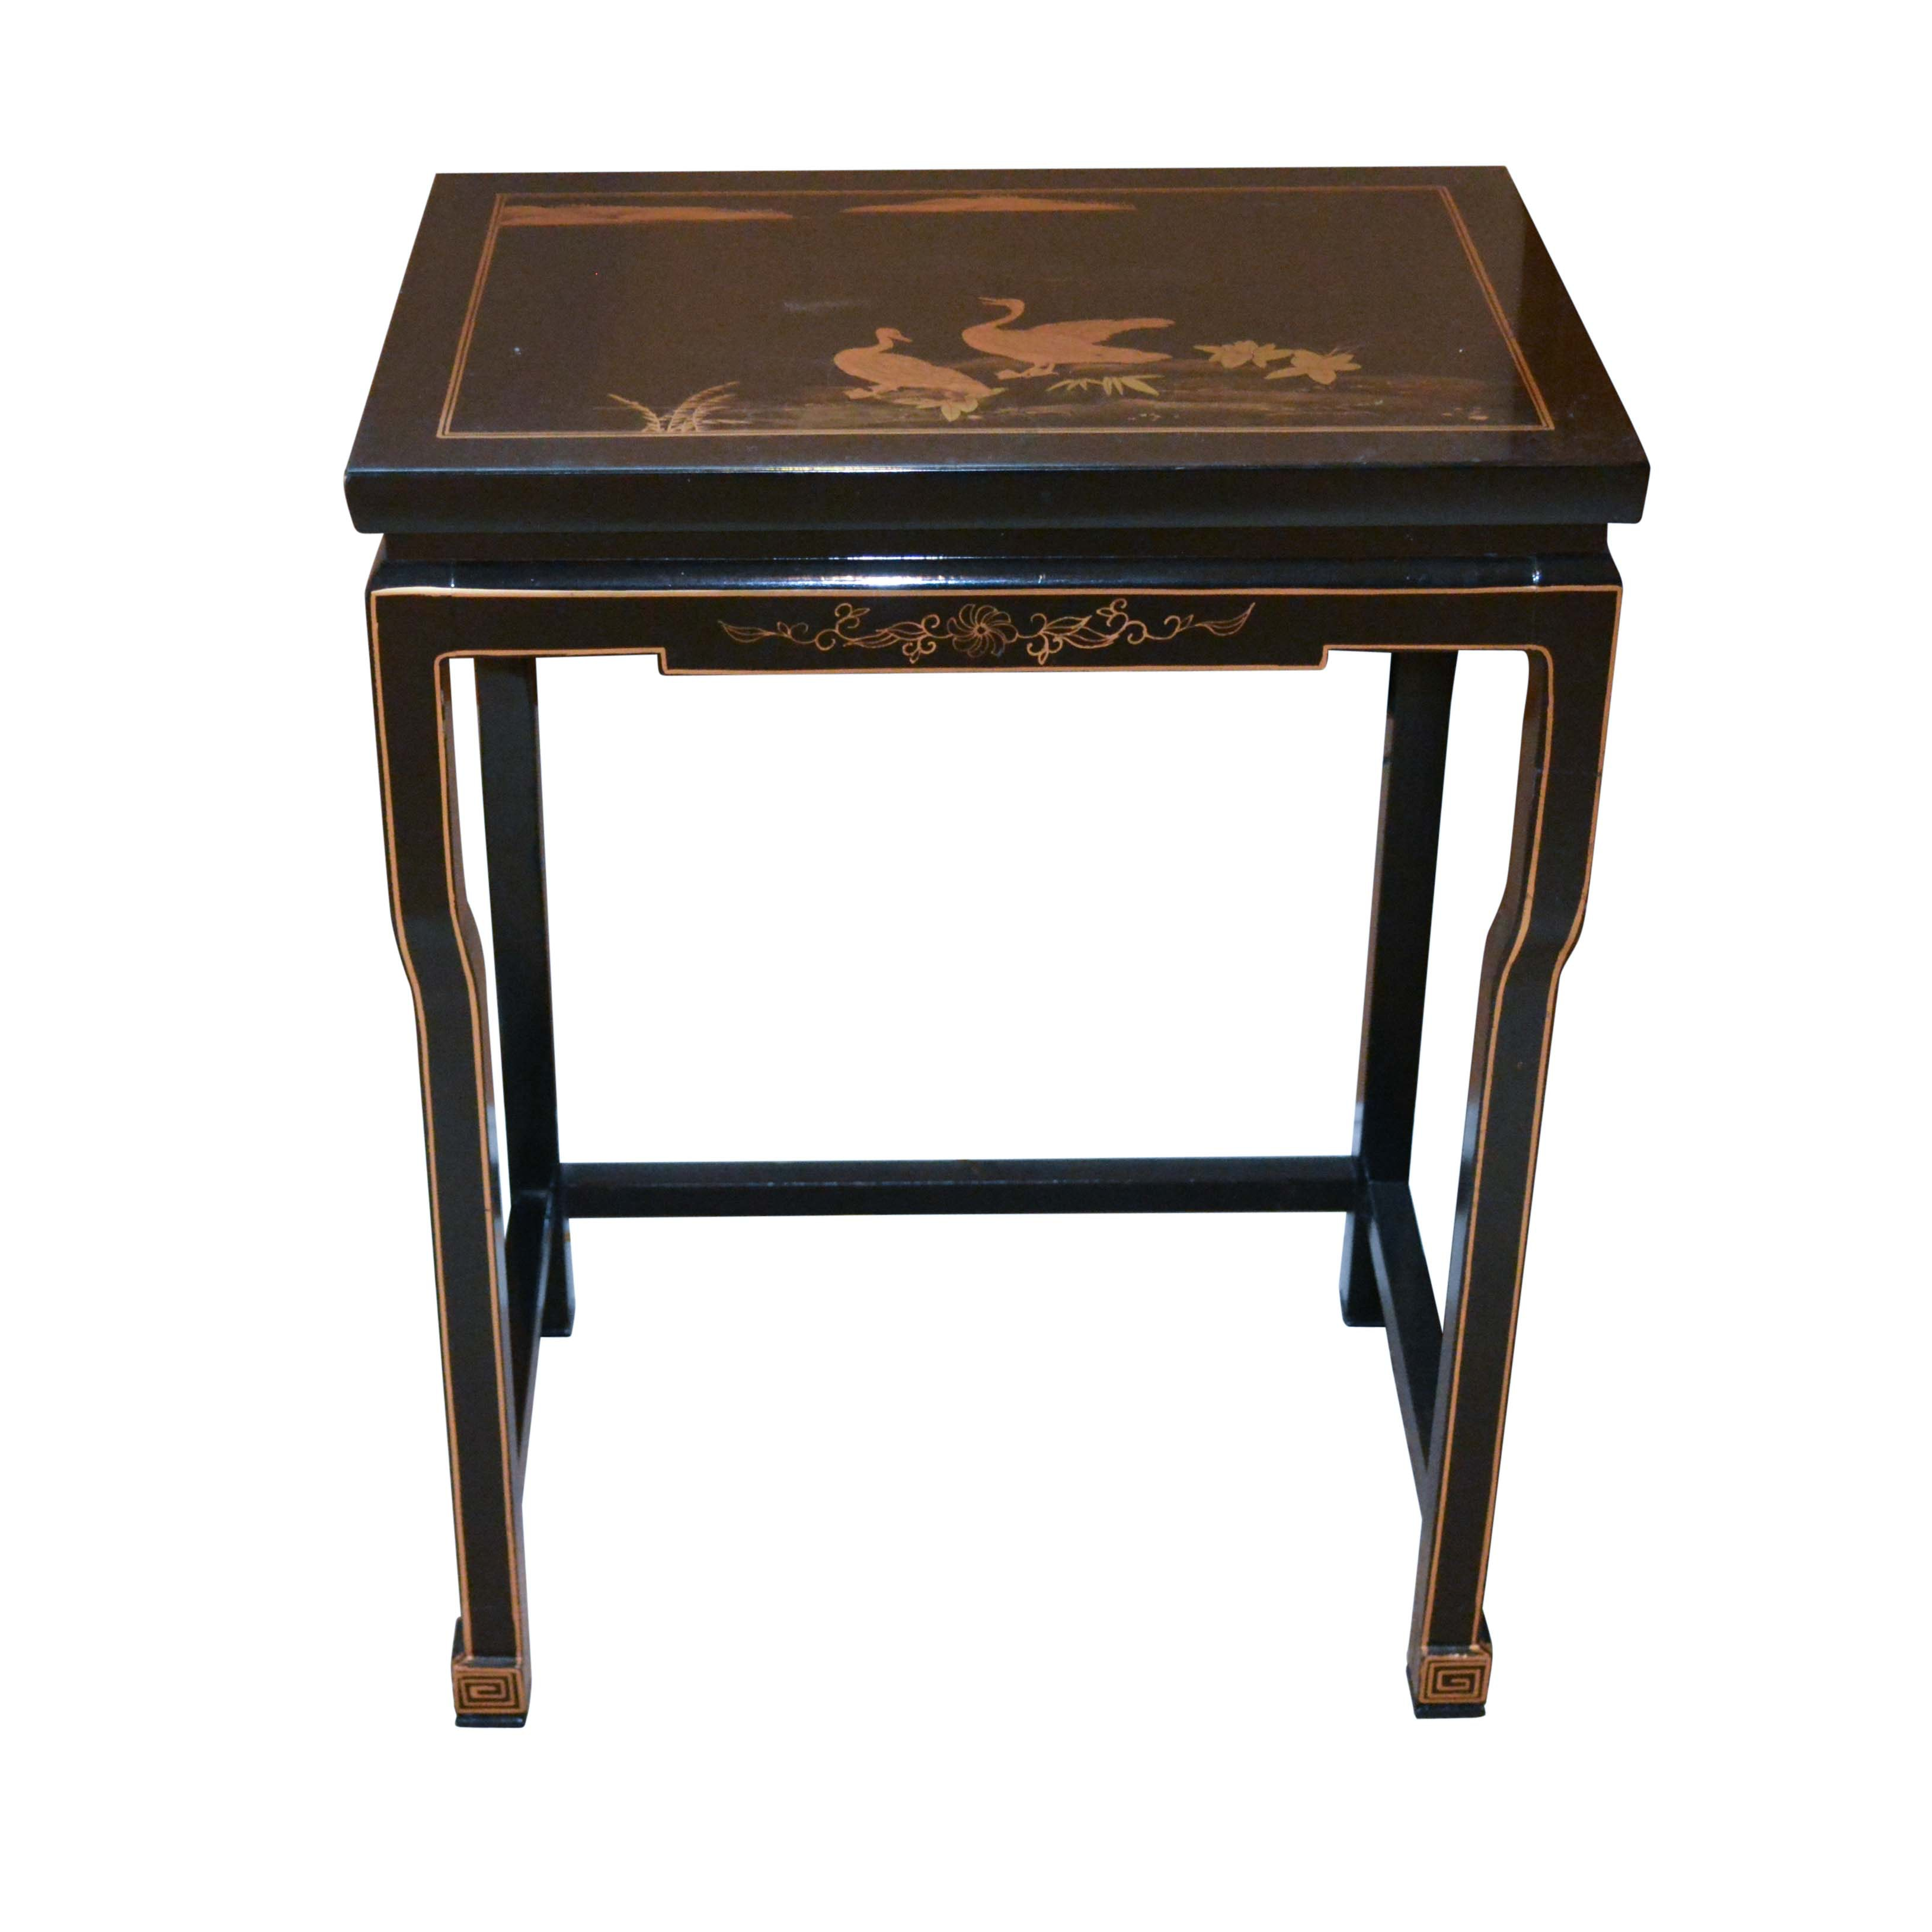 Black Lacquered Side Table with Waterfoul Motif